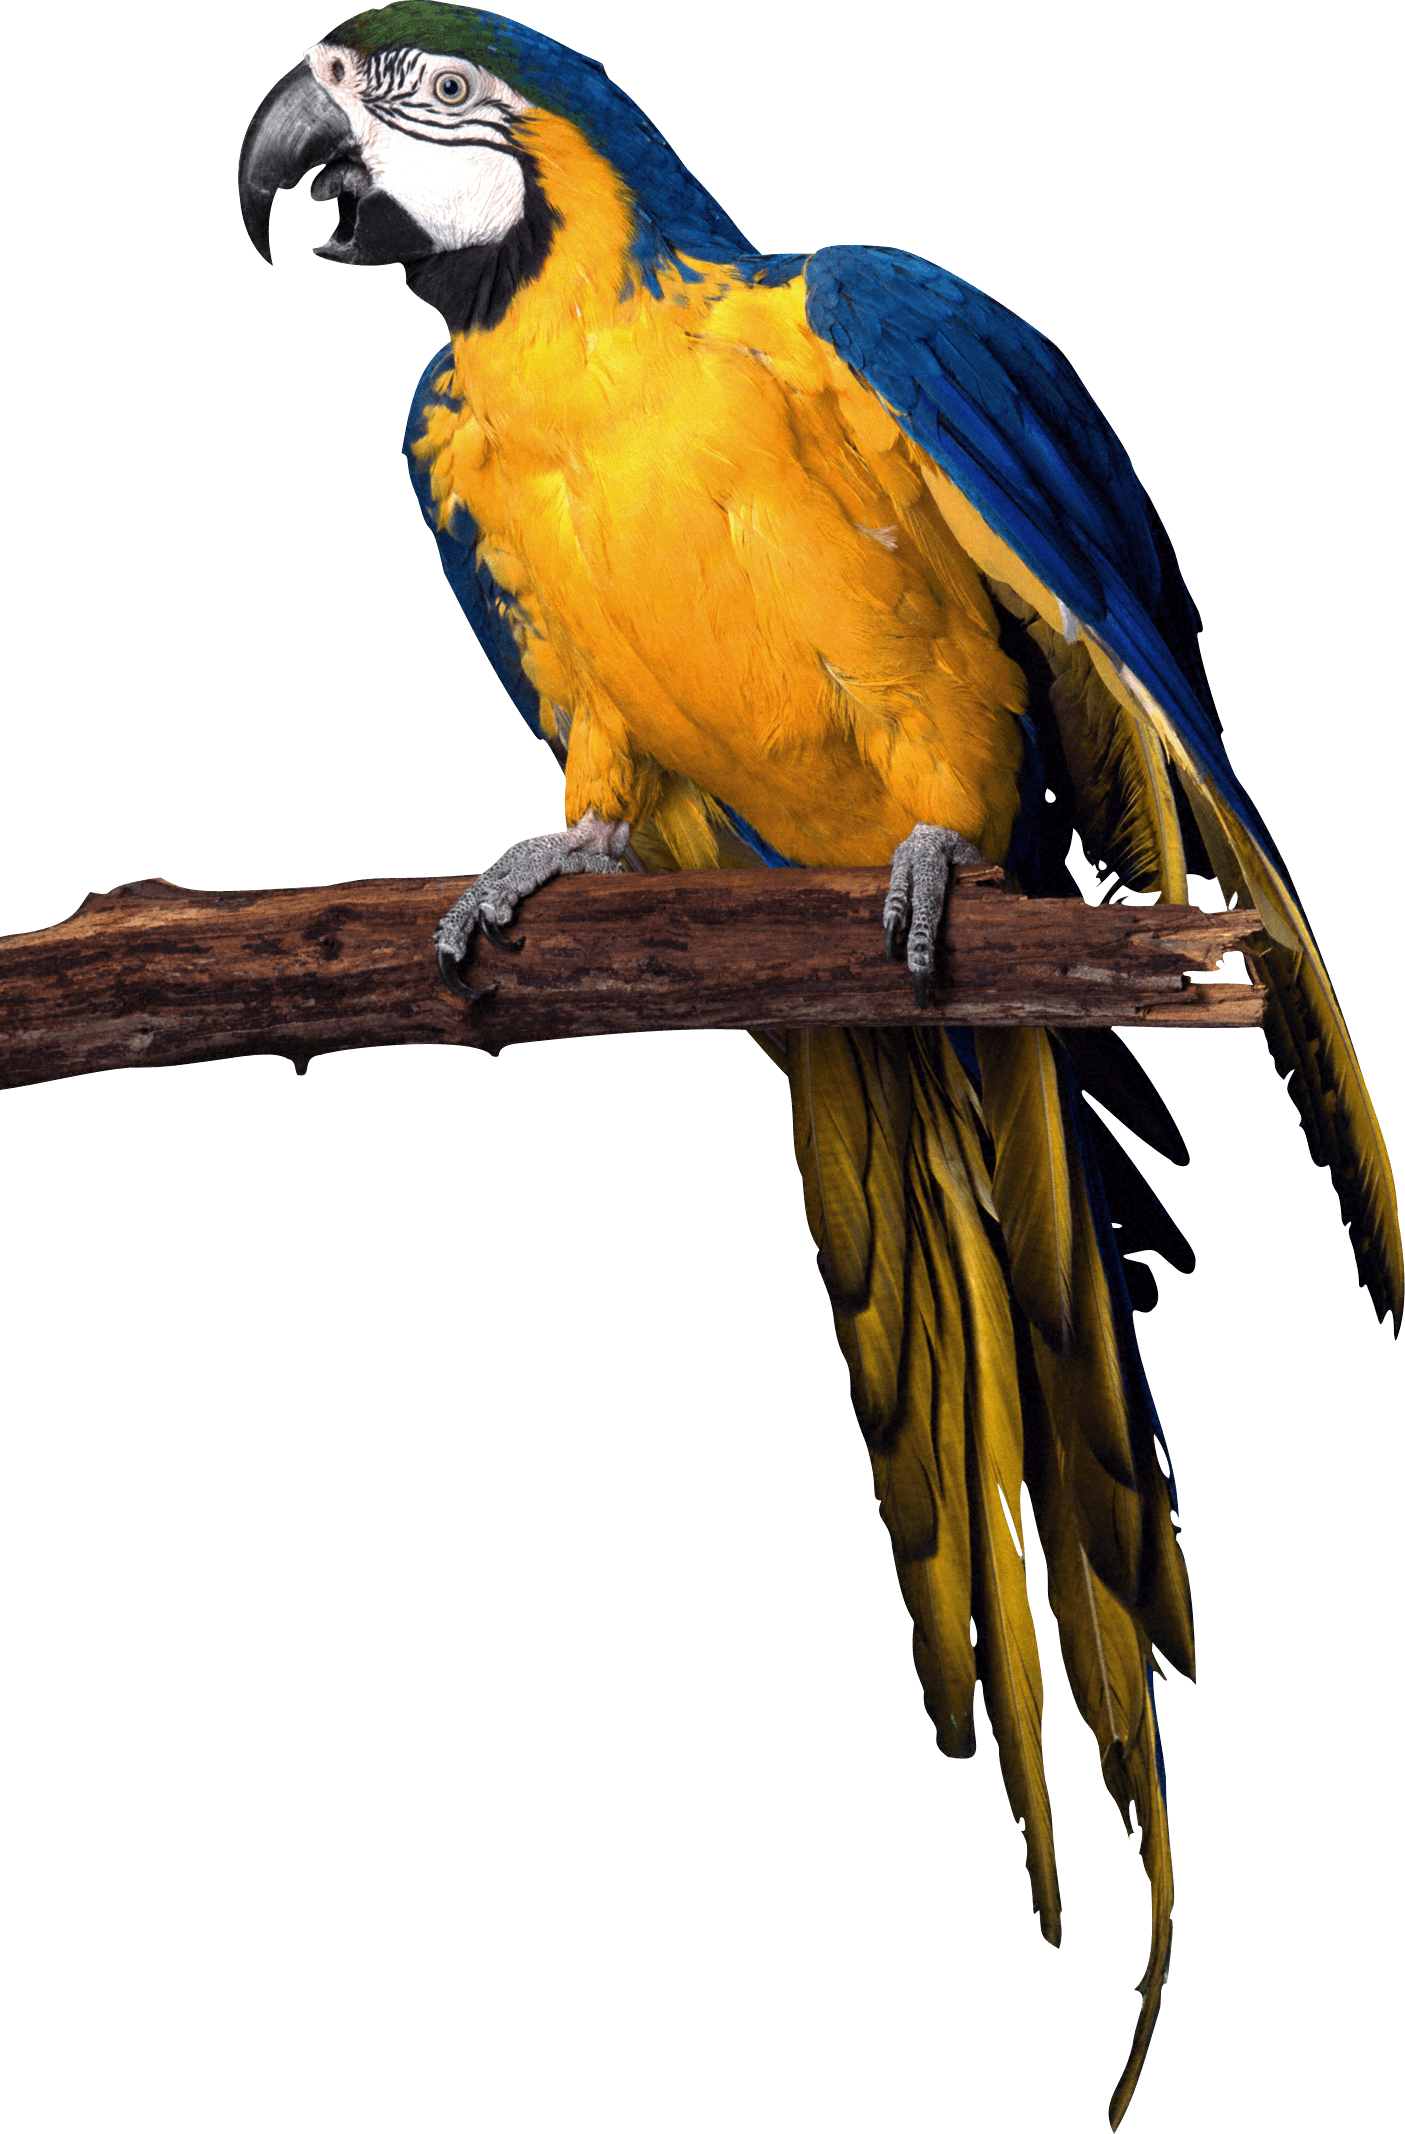 Pirate png image purepng. Parrot clipart blue yellow macaw